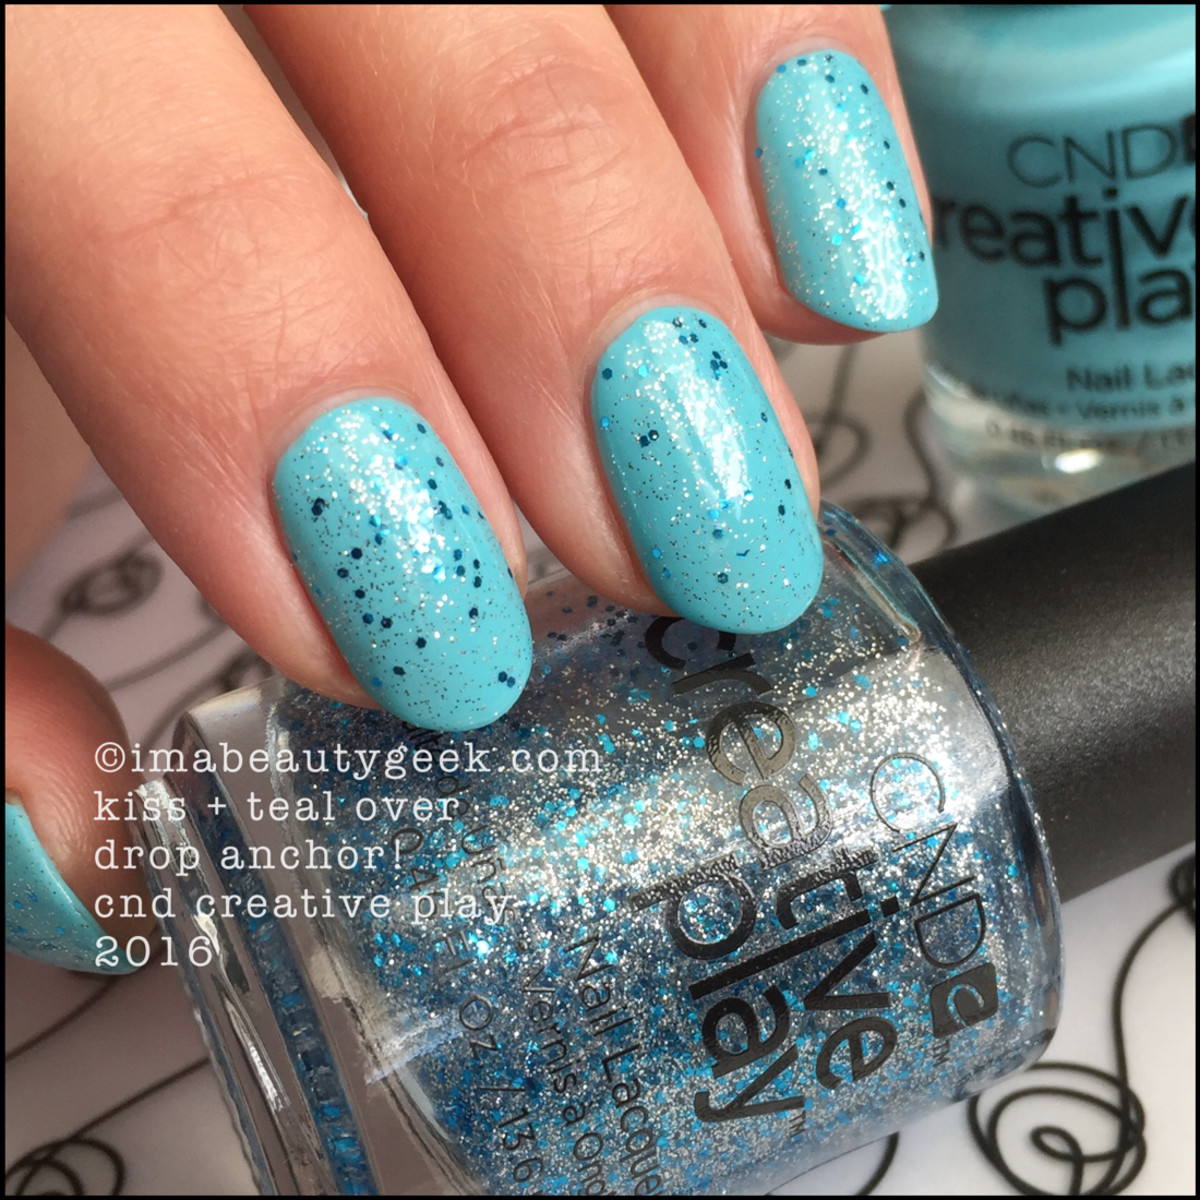 CND Creative Play Kiss + Teal over Drop Anchor_CND Creative Play Nail Polish Swatches 2016